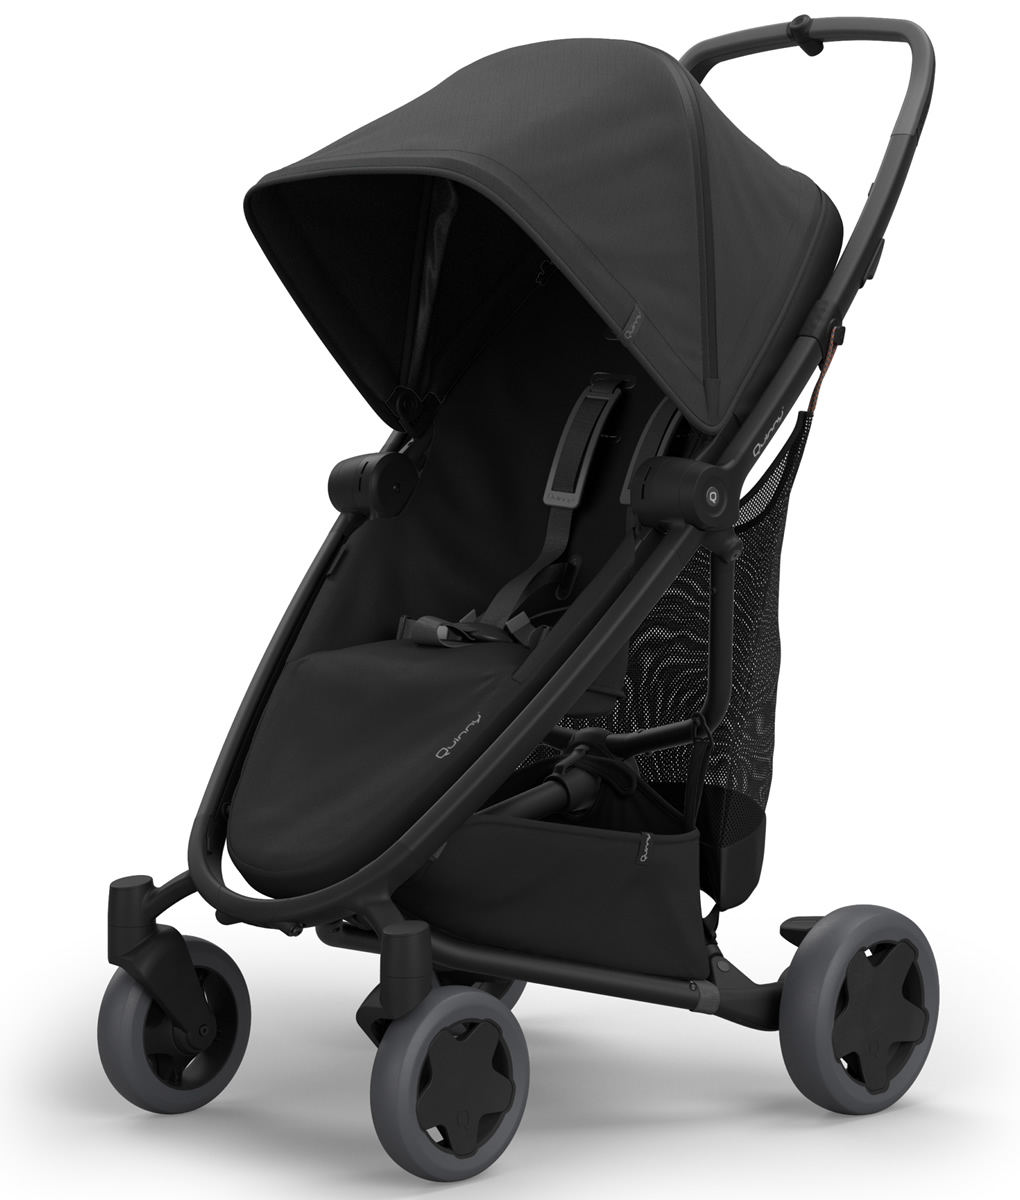 QUINNY Zapp Flex Plus Stroller - Black on Black